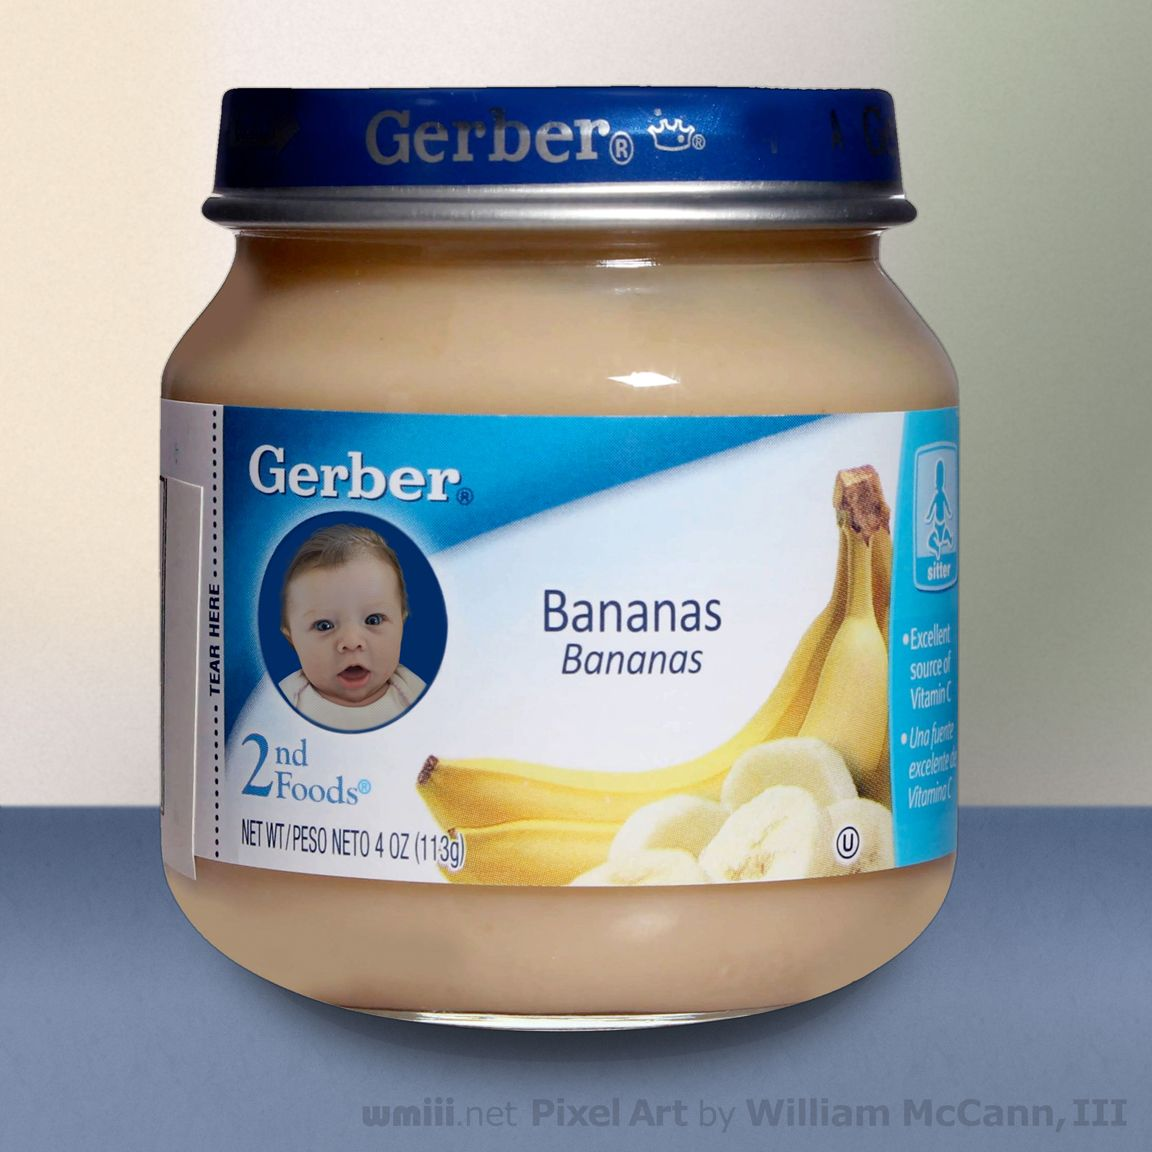 Artist's conception of how my granddaughter Stella would look on Gerber Baby Food. I'm the artist.